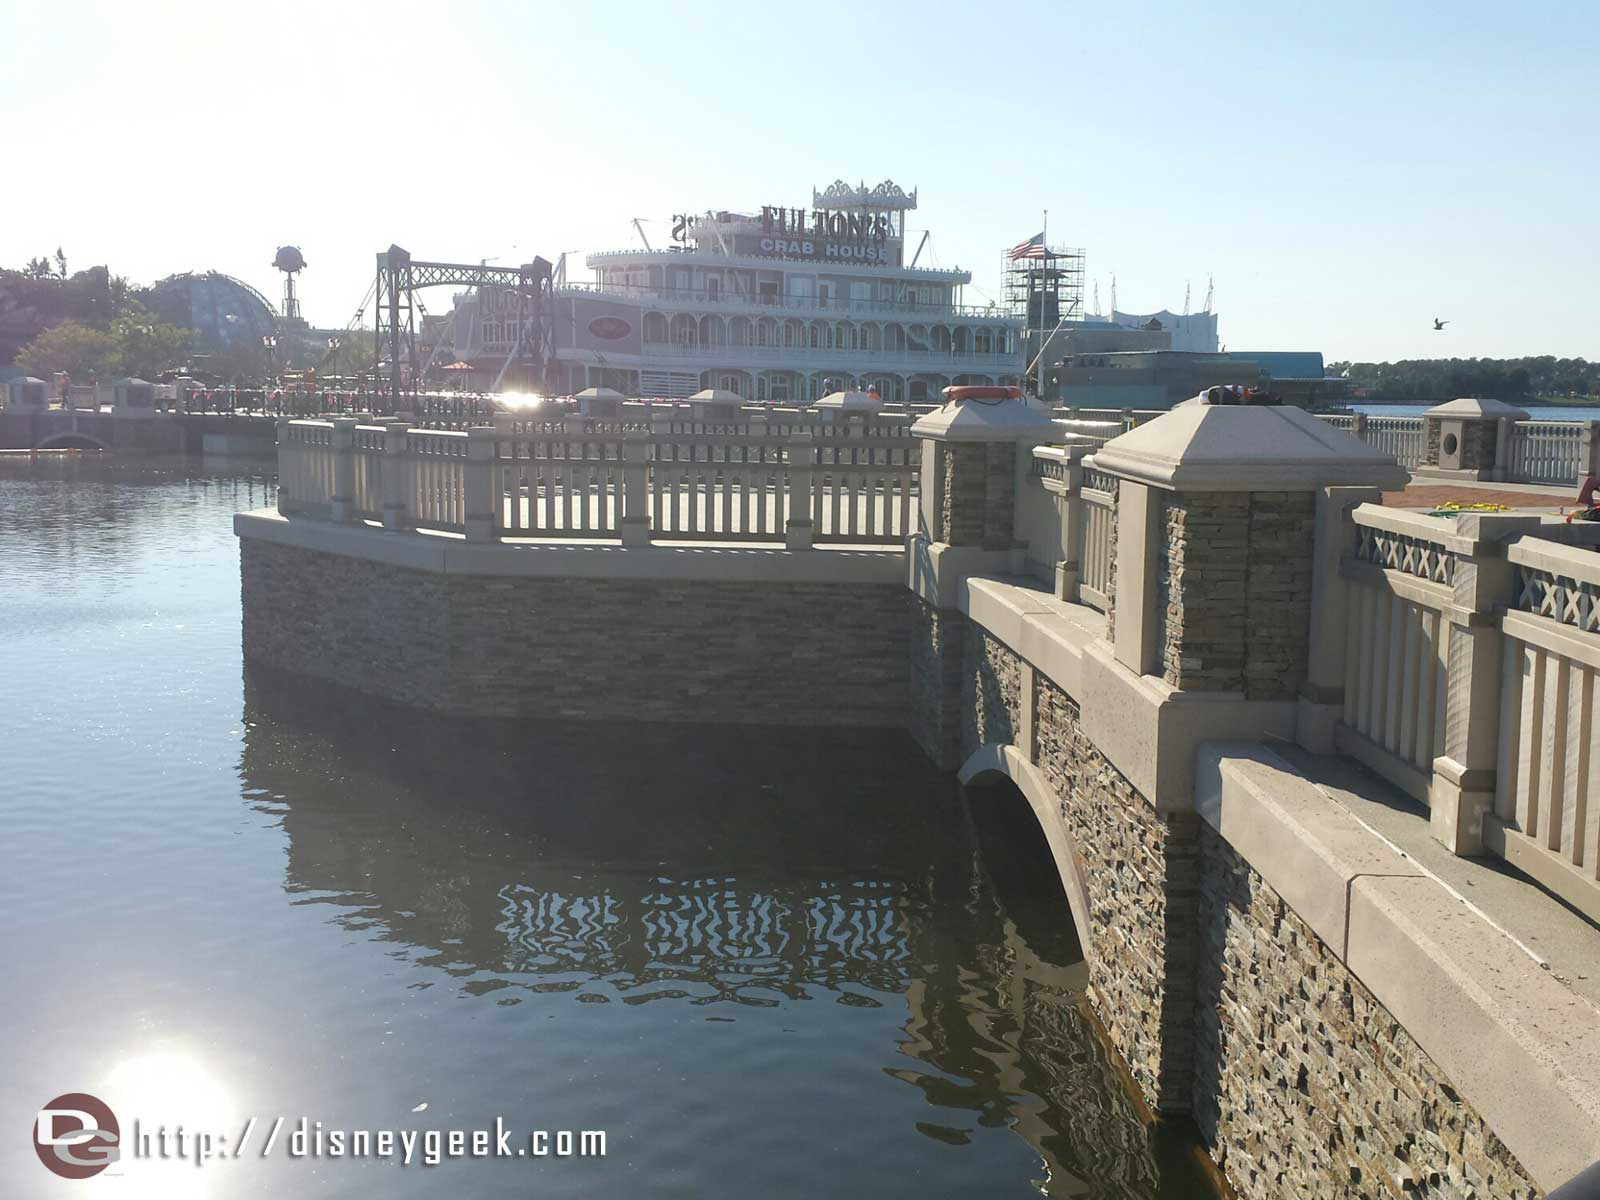 The new Disney Springs causeway is nearing completion